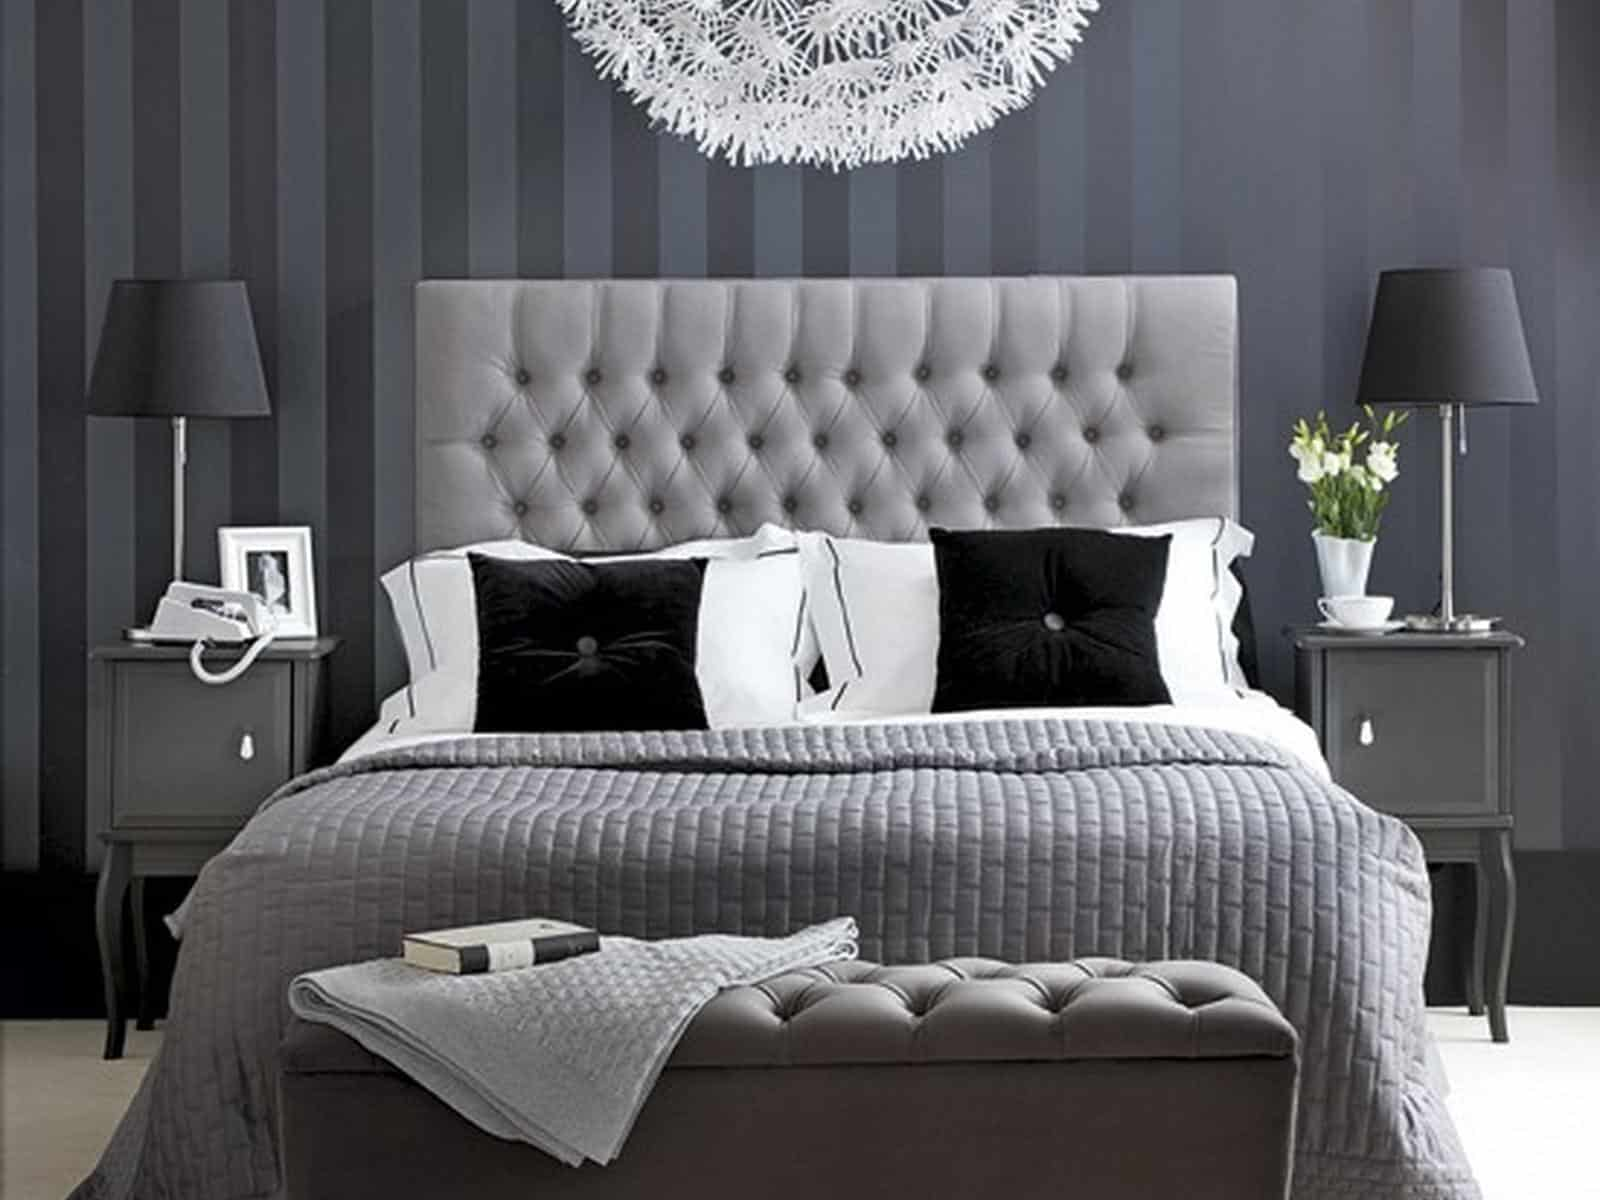 Chic Black And White Bedrooms That Are All The Rave